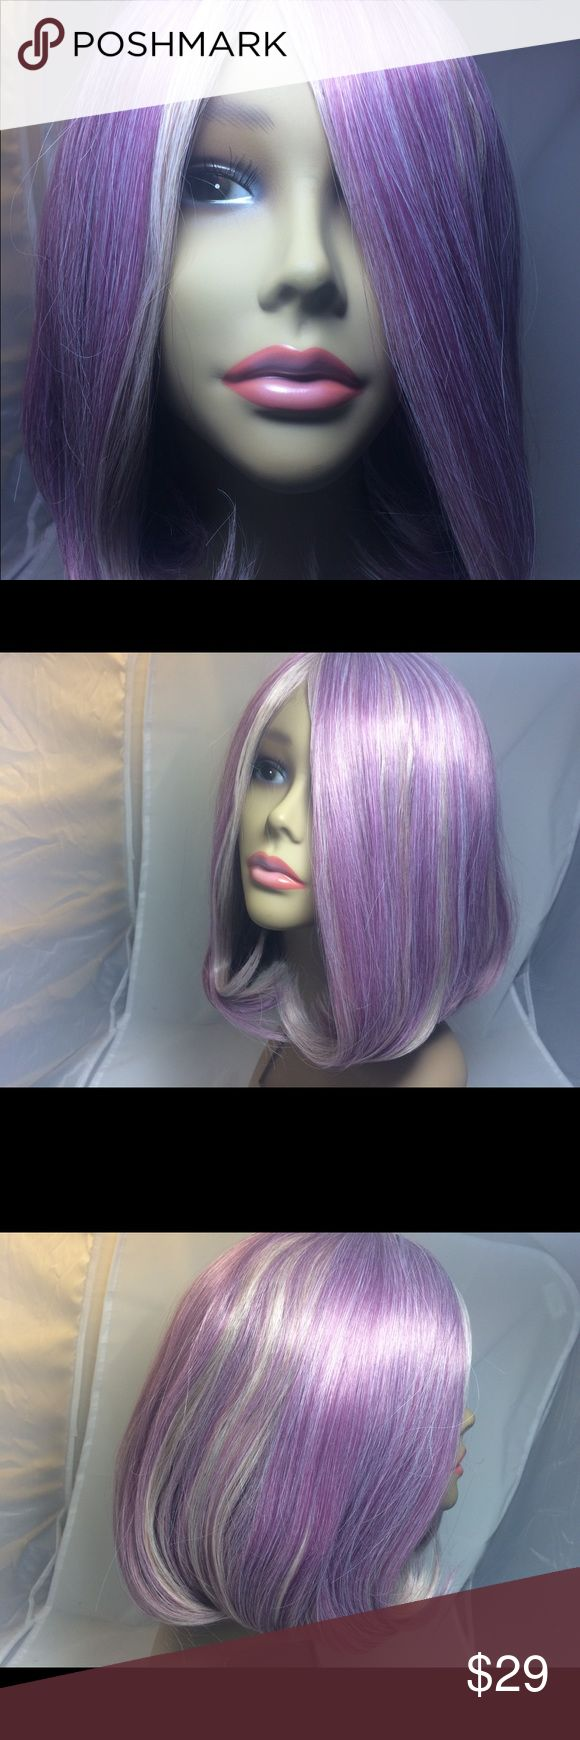 WoodFestival Light PurpleTaro Synthetic Bob Wig WoodFestival Light PurpleTaro Bob Wig Women Short  Hair Wigs Synthetic Wigs  Ships only to the lower 48 states   FEATURES:  wig cosplay: synthetic wigs   synthetic wig: hair wigs   14 inch: ombre wig   Style: Body Wave   lolita wig: Wig   synthetic wig   short wigs: synthetic hair   Cap Size: Average Size   Length: 14   purple wig: cosplay wigs   short wig: bob wig WoodFestival Accessories Hair Accessories